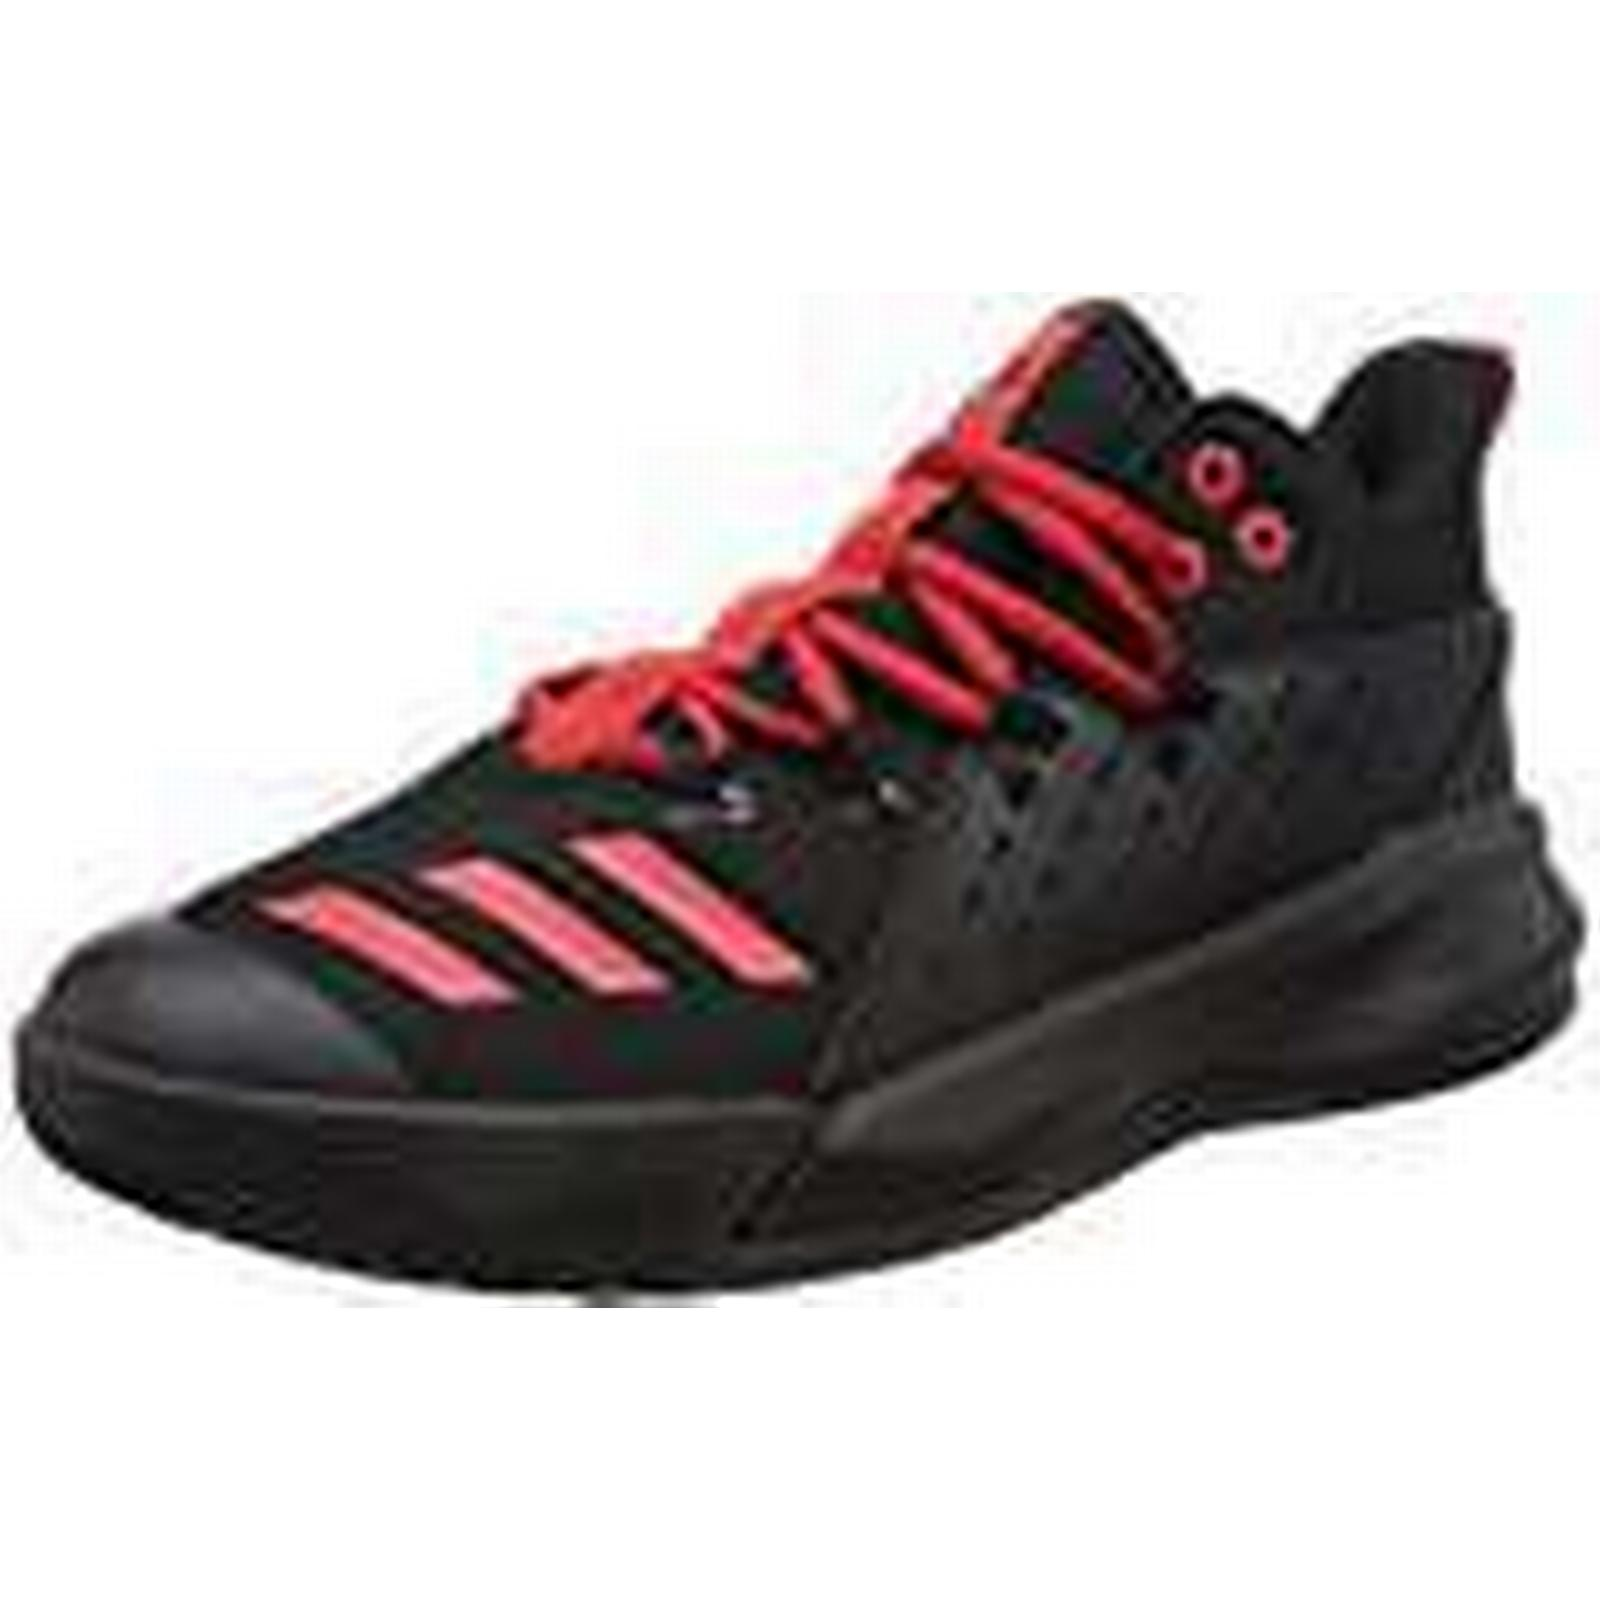 Adidas Men's Street Jam 3 BB7127 Trainers, 9.5 Black/Scarlet Red, Size UK 9.5 Trainers, 282434